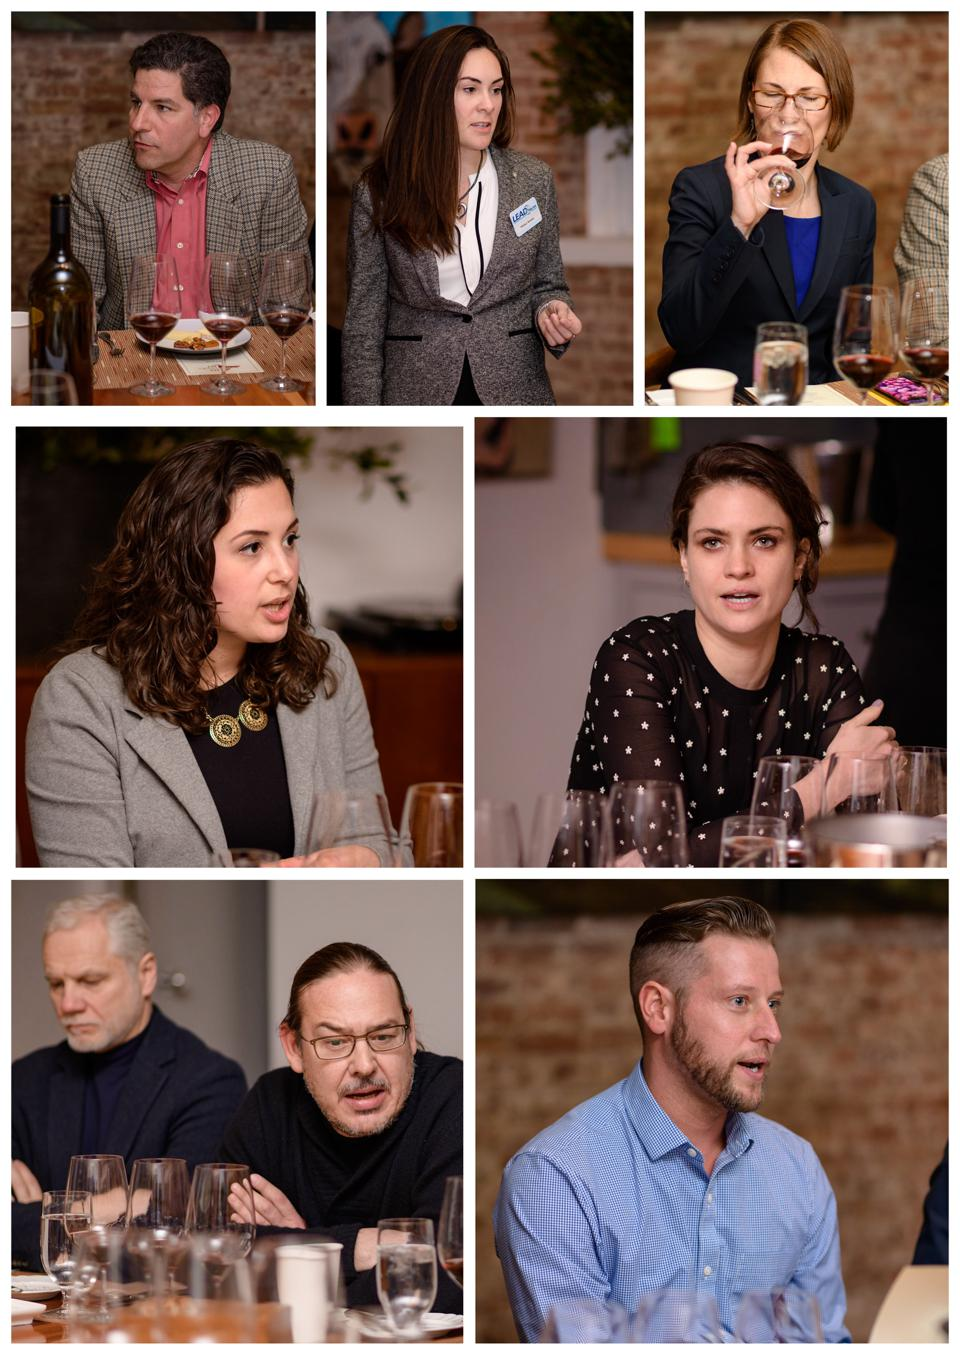 Faces of the nine wineries tasted at the 2020 Long Island Library Reds Lunch in Manhattan